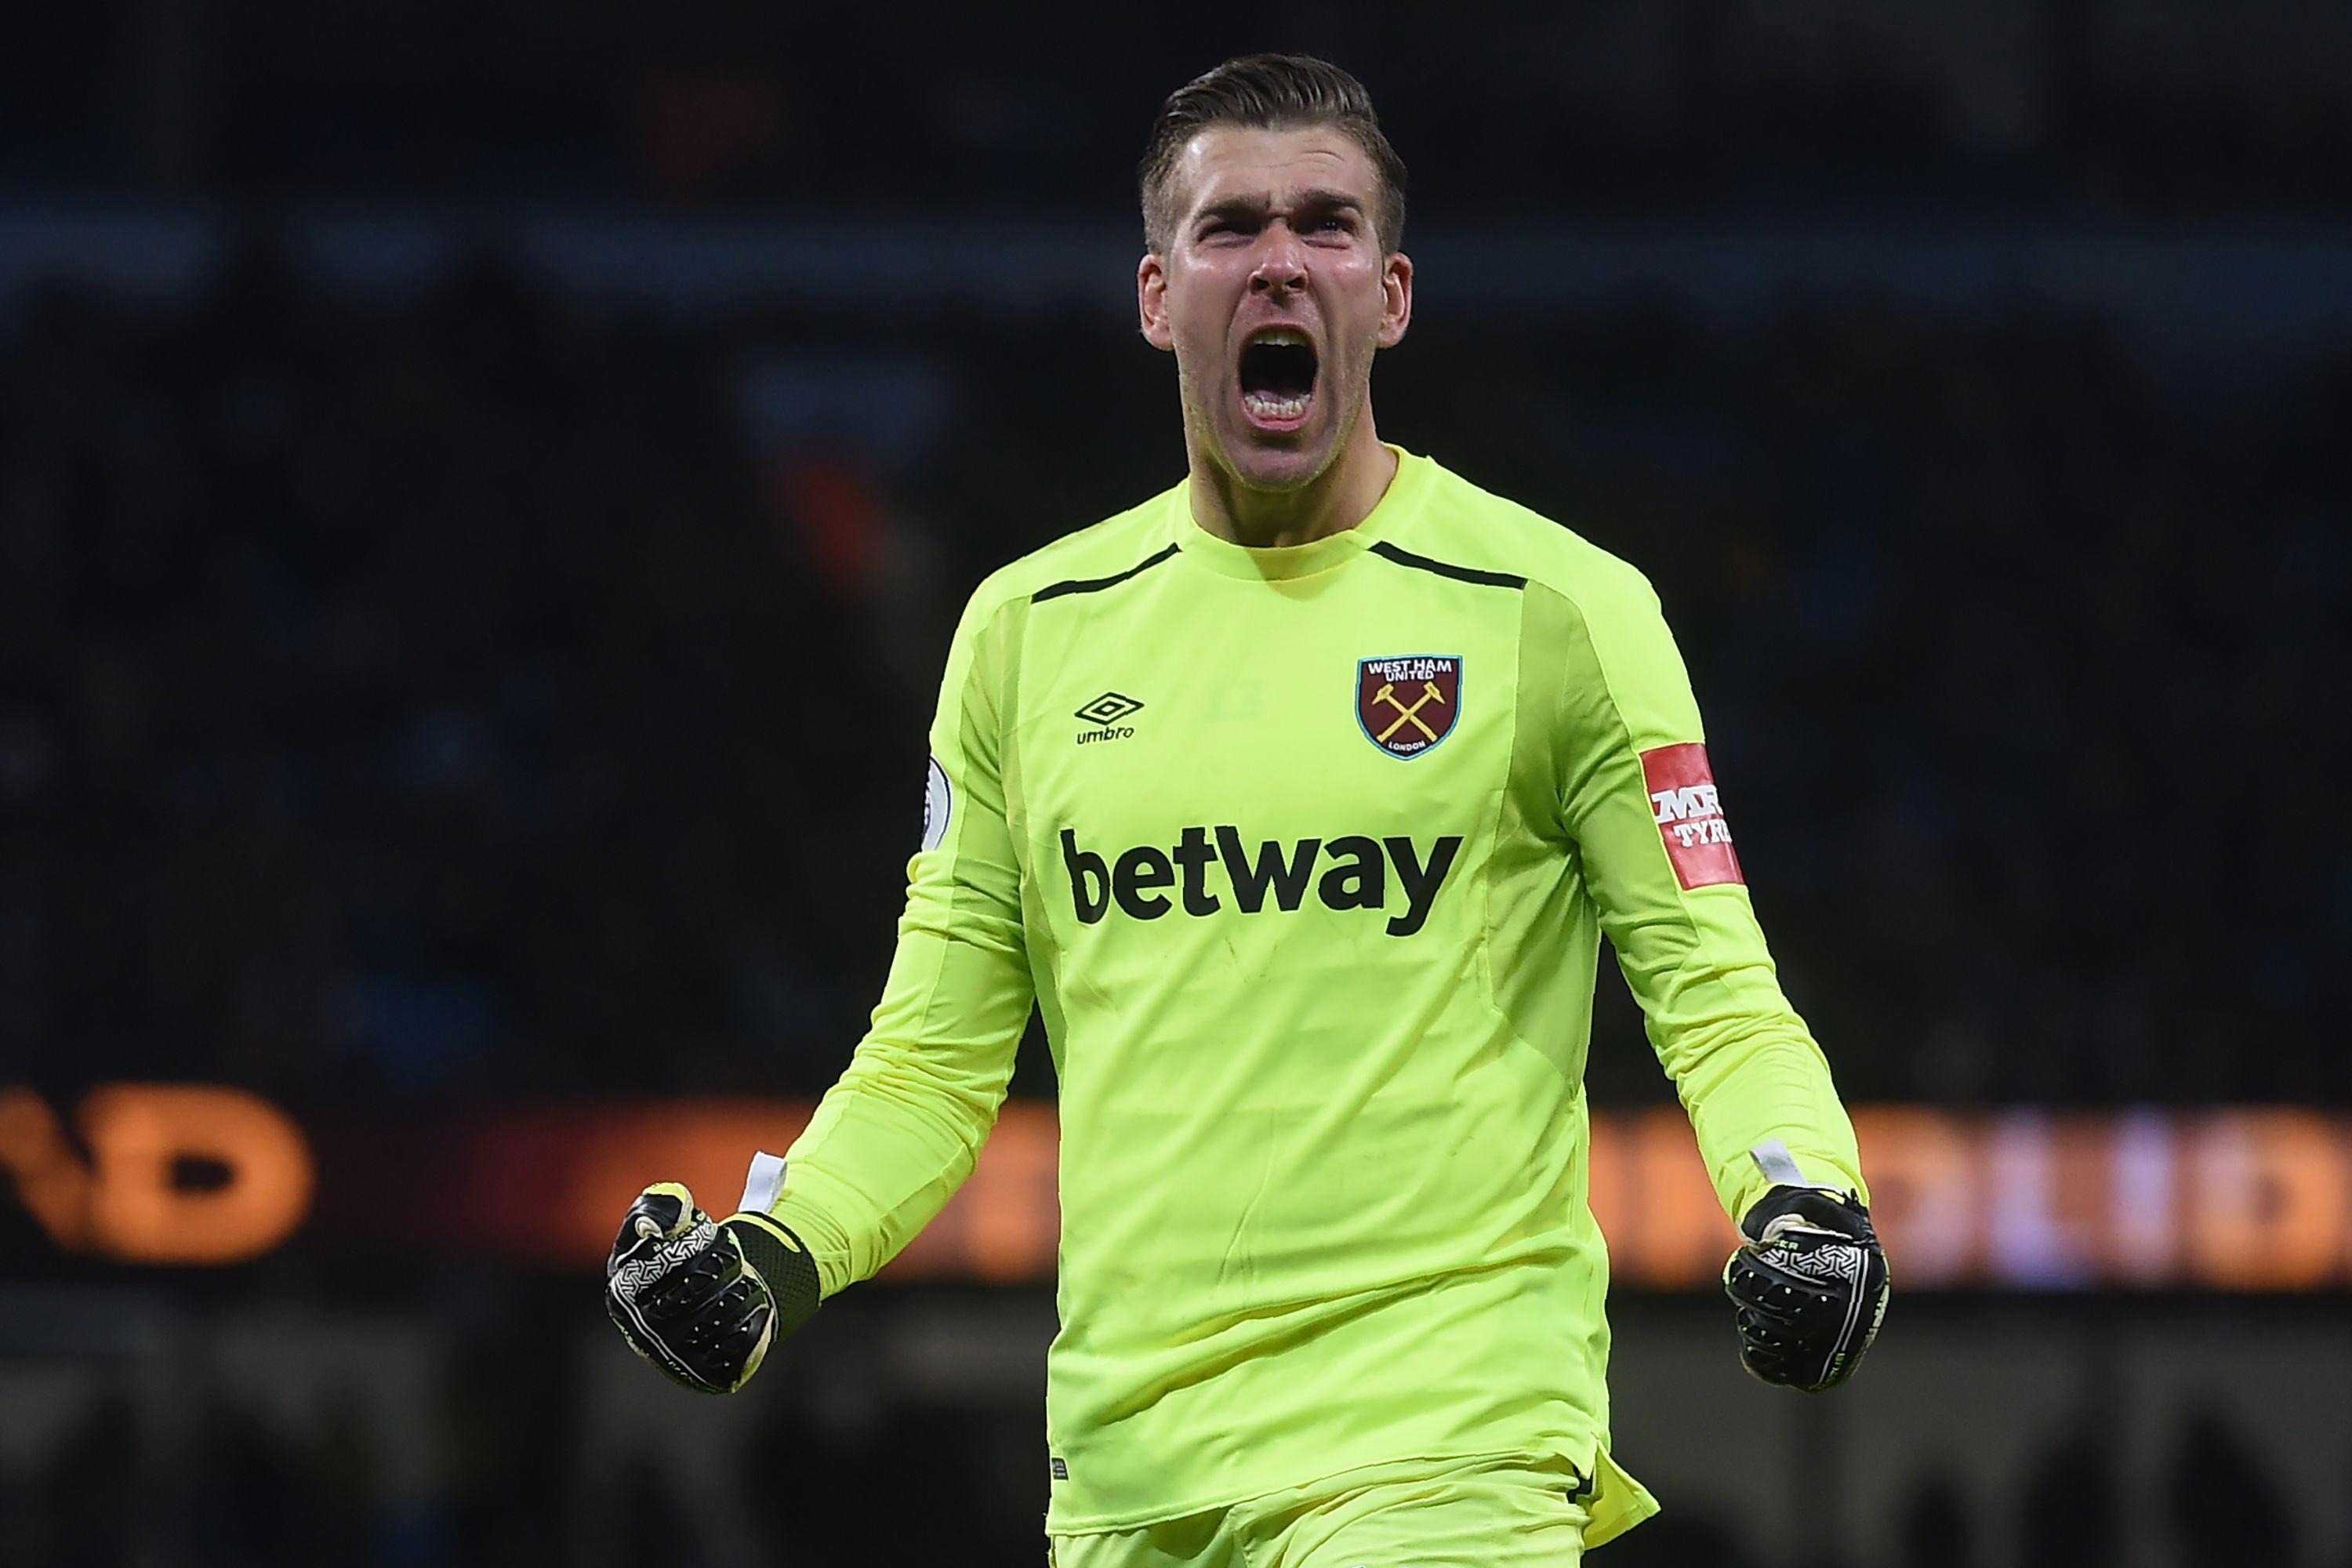 Adrian impressed in West Ham's 2-1 defeat at Manchester City